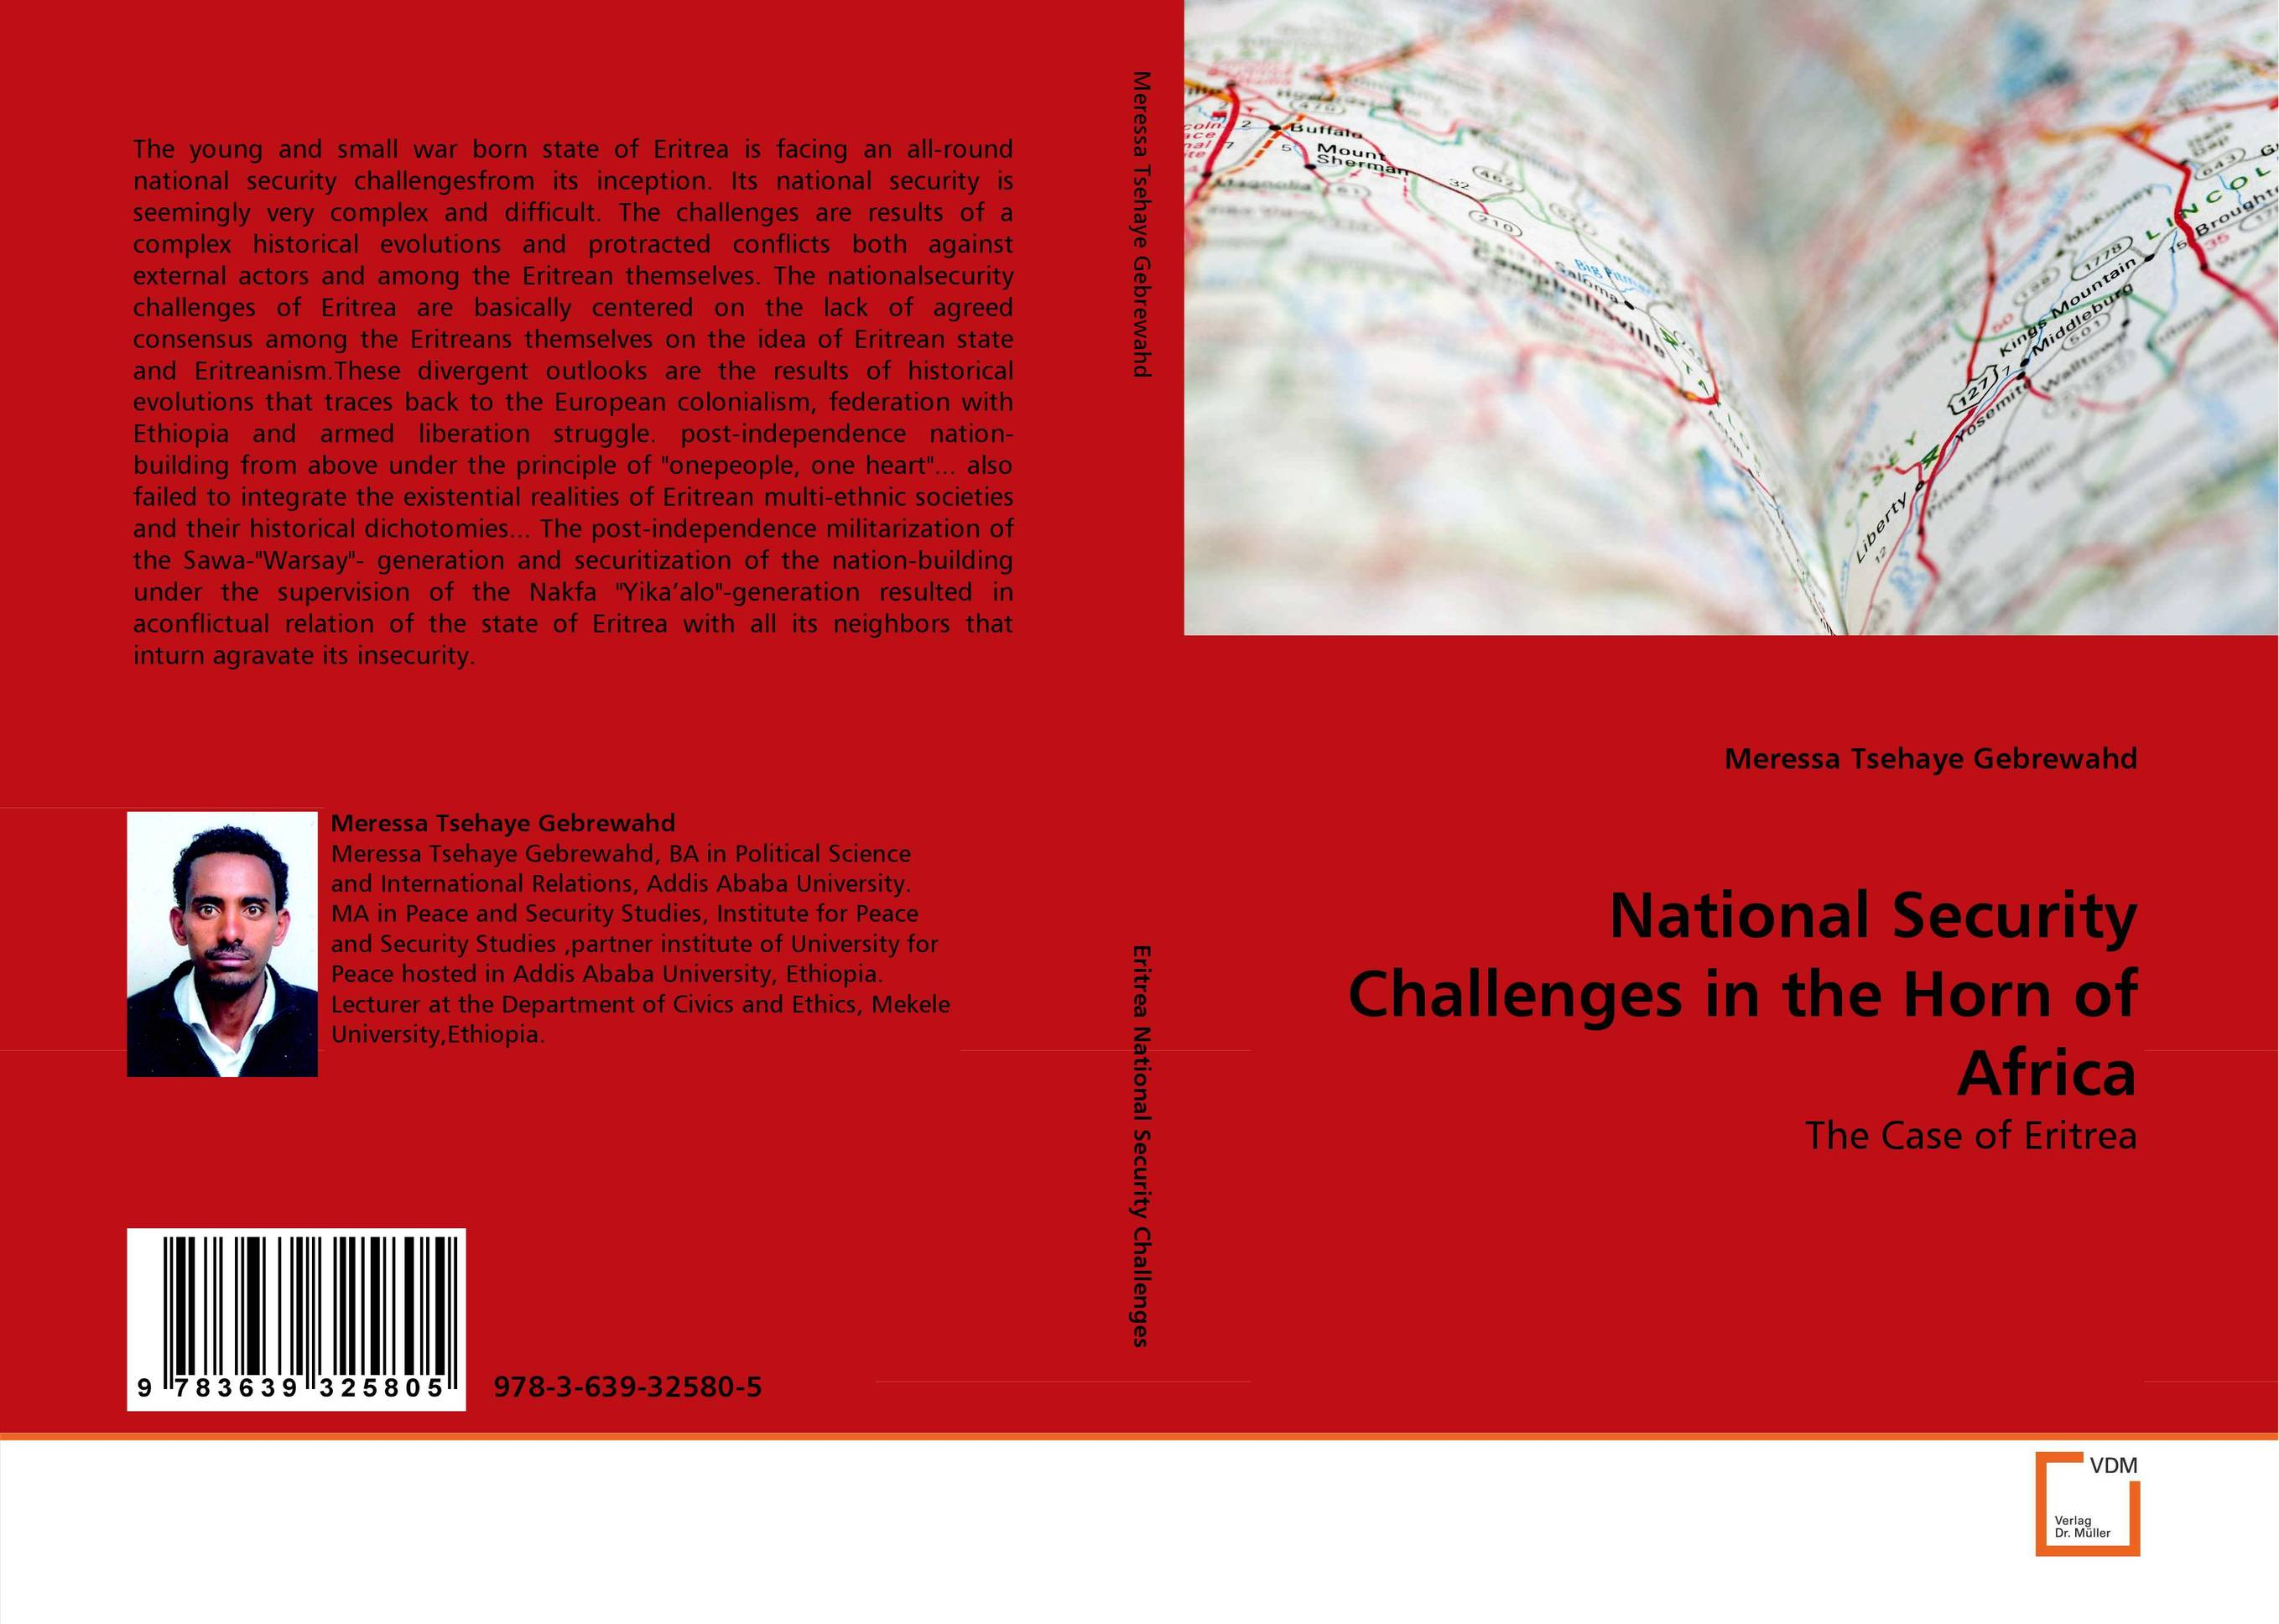 National Security Challenges in the Horn of Africa globalization its challenges on democracy and effects on africa